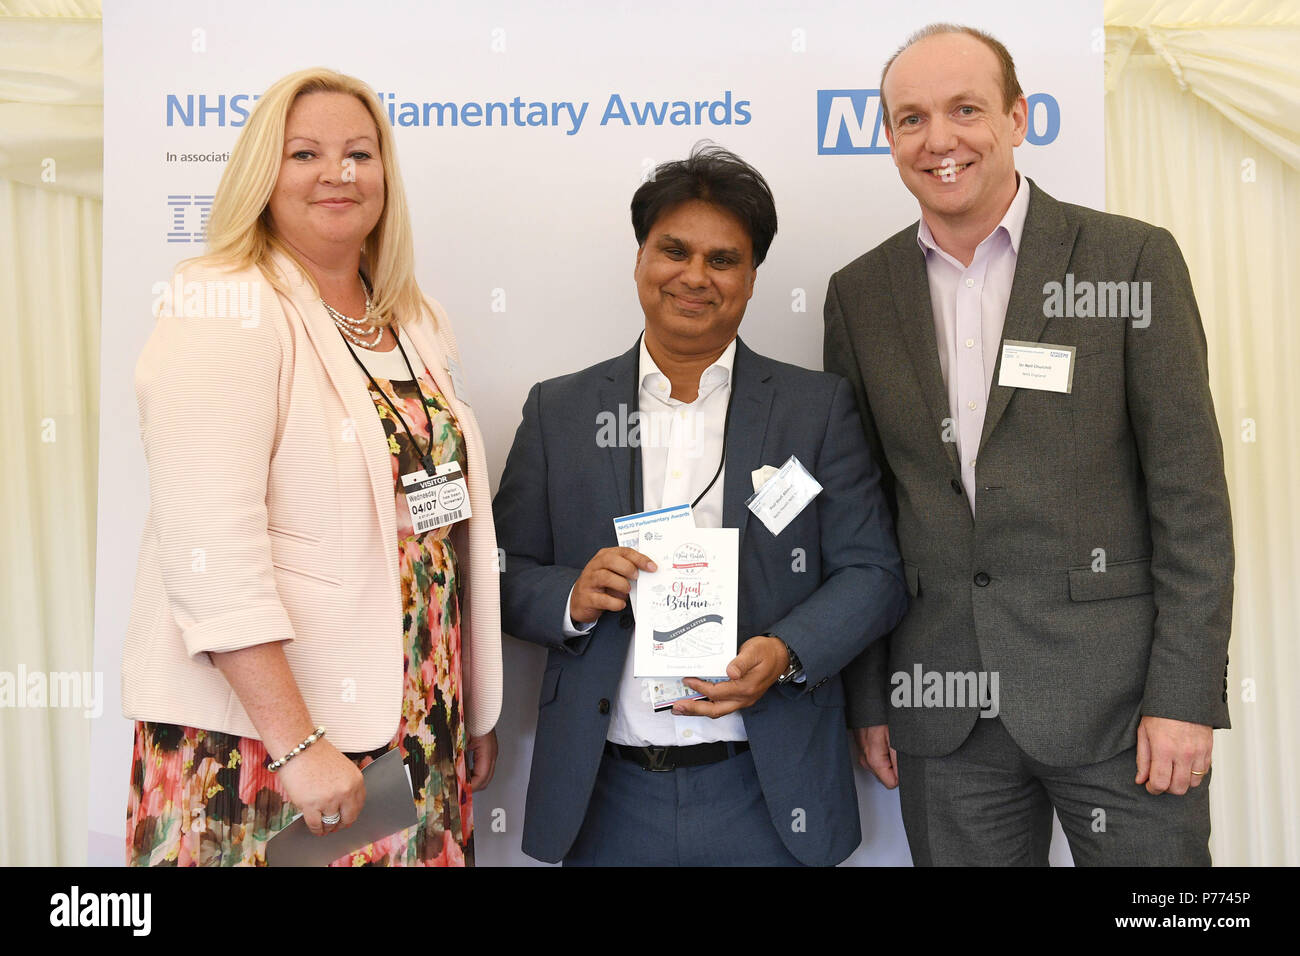 Professor Shafi Ahmed (centre) receives his Future NHS Award from Kerry Eldridge and Neil Churchill during the NHS70 parliamentary awards for the 70th anniversary of the NHS at the House of Commons in Westminster, London. - Stock Image